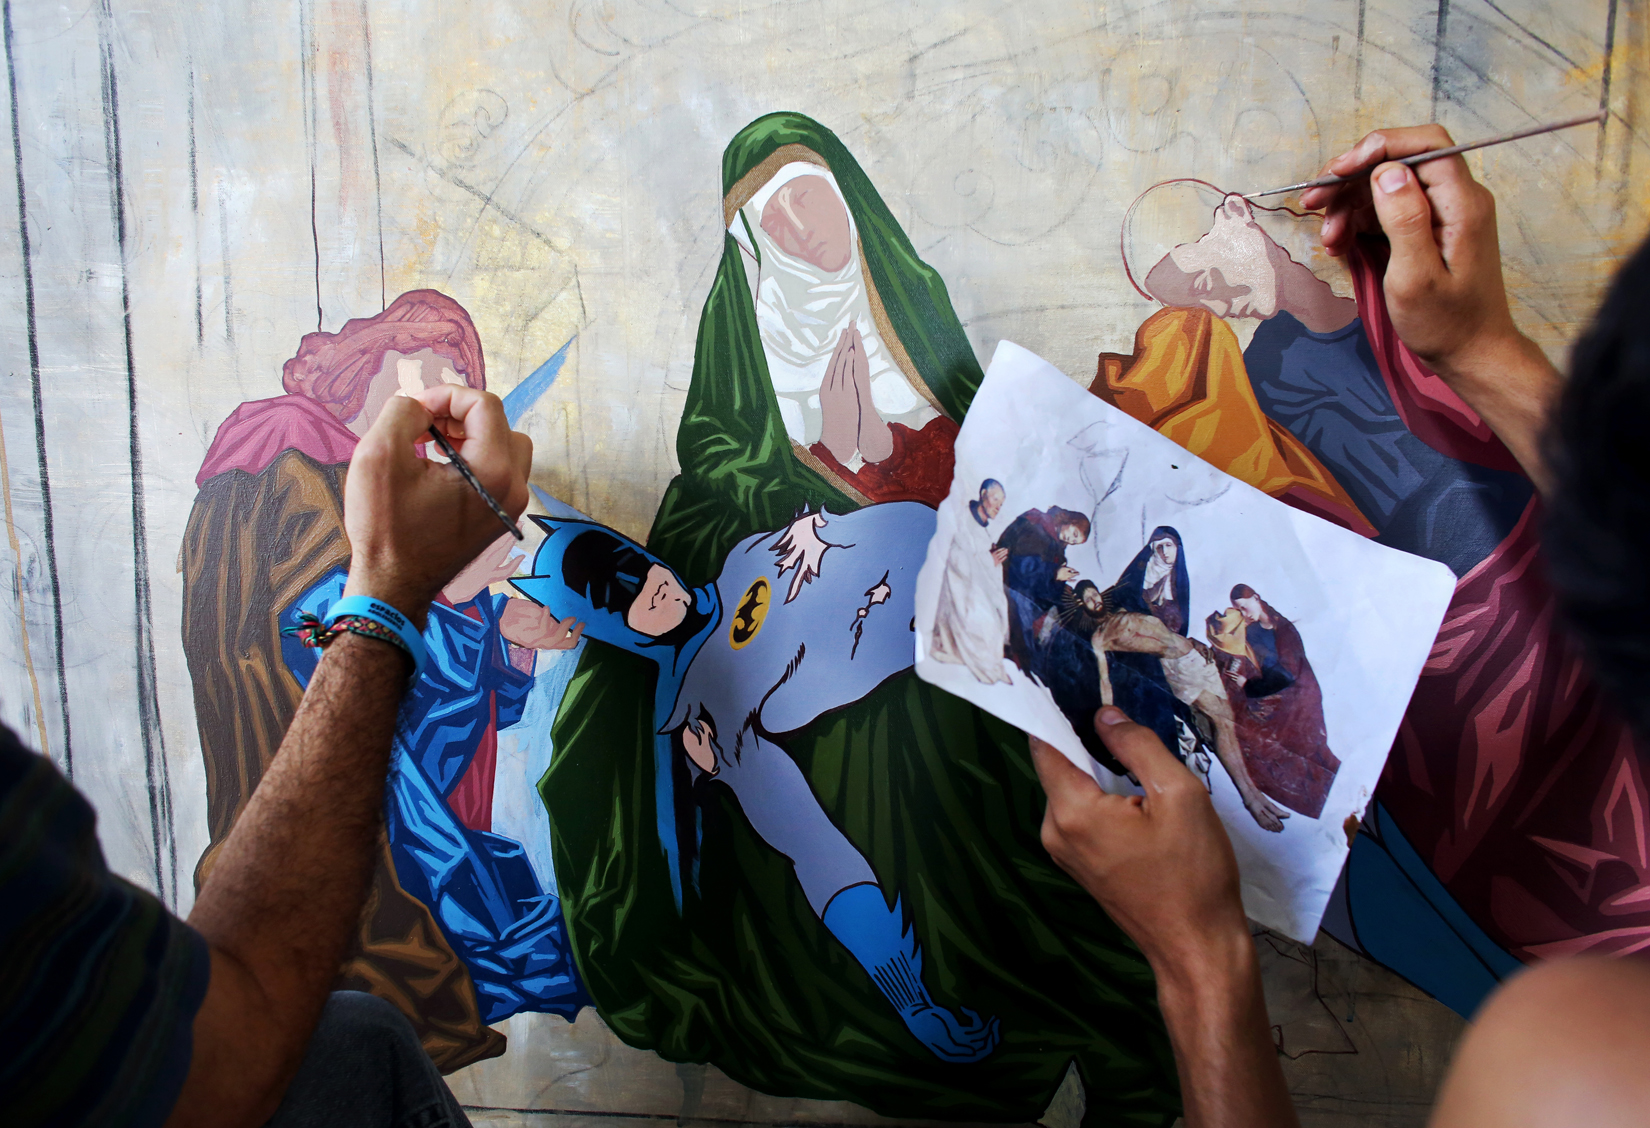 (L-R) Artists Angel León, 24, and Victor Manuel Ojeda, 24, work on nuancing a painting done by painter Eduardo Abela, 52, in Havana, Cuba, that satirically references the cult of action heroes by replacing religious figures with Western cartoon characters in copies of theological paintings. Art during the Communist years in Eastern Europe was highly sanitized - and artists who chose not to show a utopian view of the country, censored and punished. Artists in state-run Cuba as well have felt pressure to sanitize political issues and any difficulties the Cuban people may face, or omit them altogether. While the more open era of Raúl Castro has made it easier to toe the line in these areas of self-expression, artists who cross it altogether risk losing the support of government-controlled galleries that display their works.